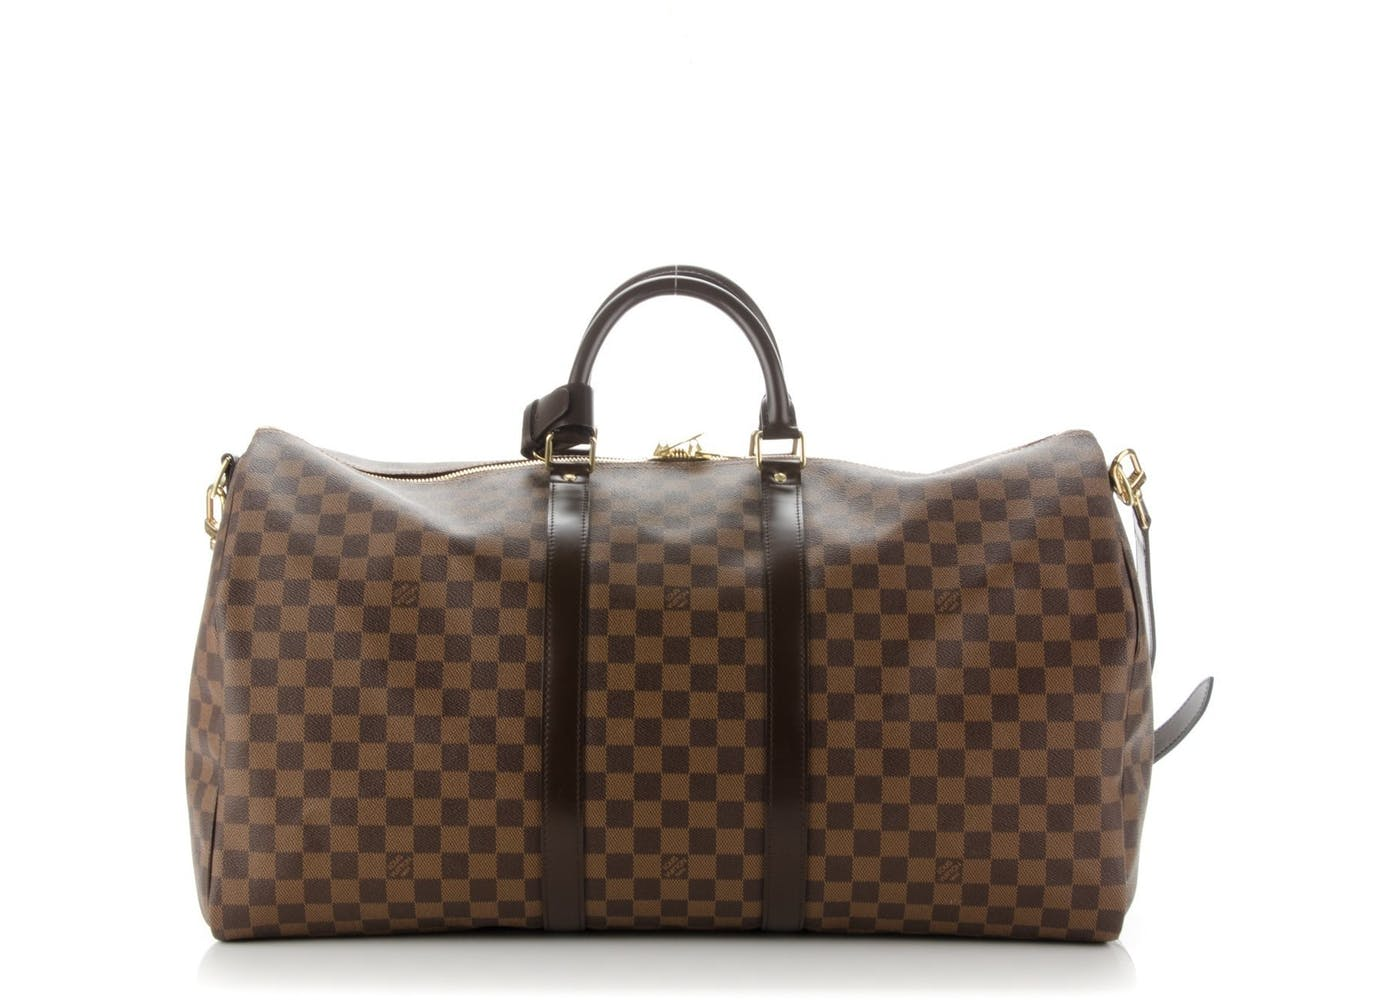 louis vuitton keepall bandouliere damier ebene 55 brown. Black Bedroom Furniture Sets. Home Design Ideas